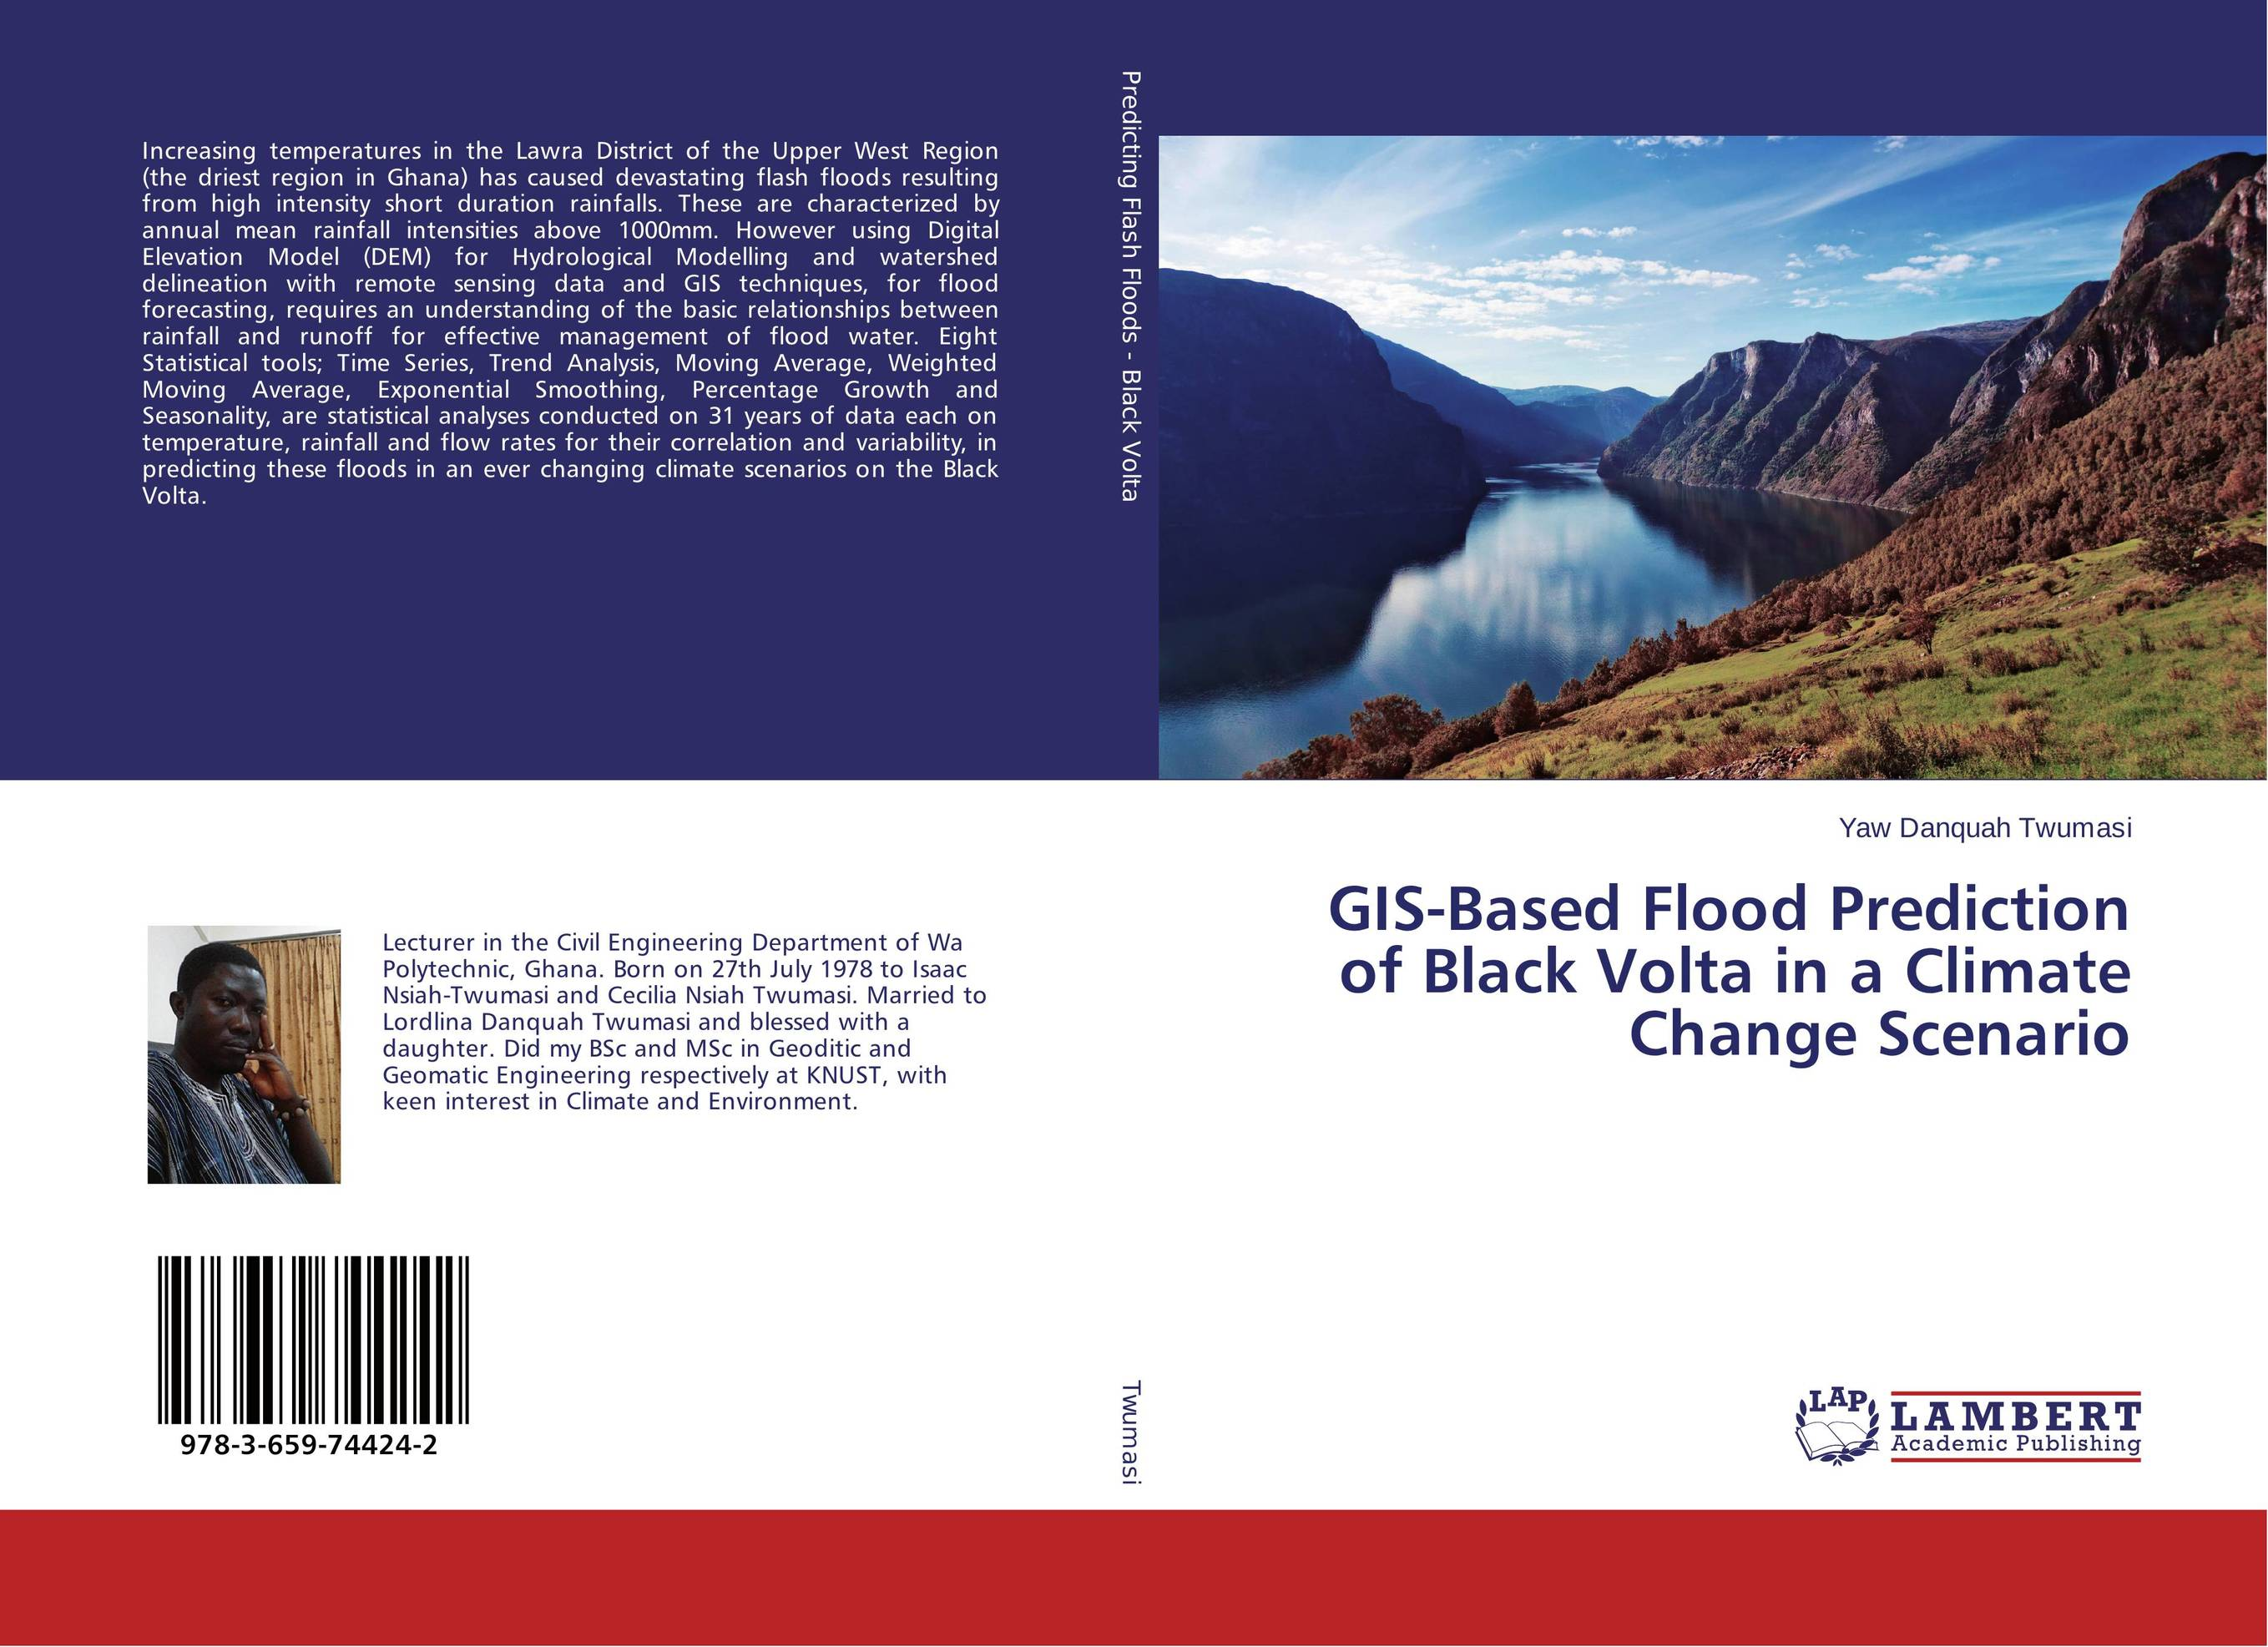 GIS-Based Flood Prediction of Black Volta in a Climate Change Scenario gis